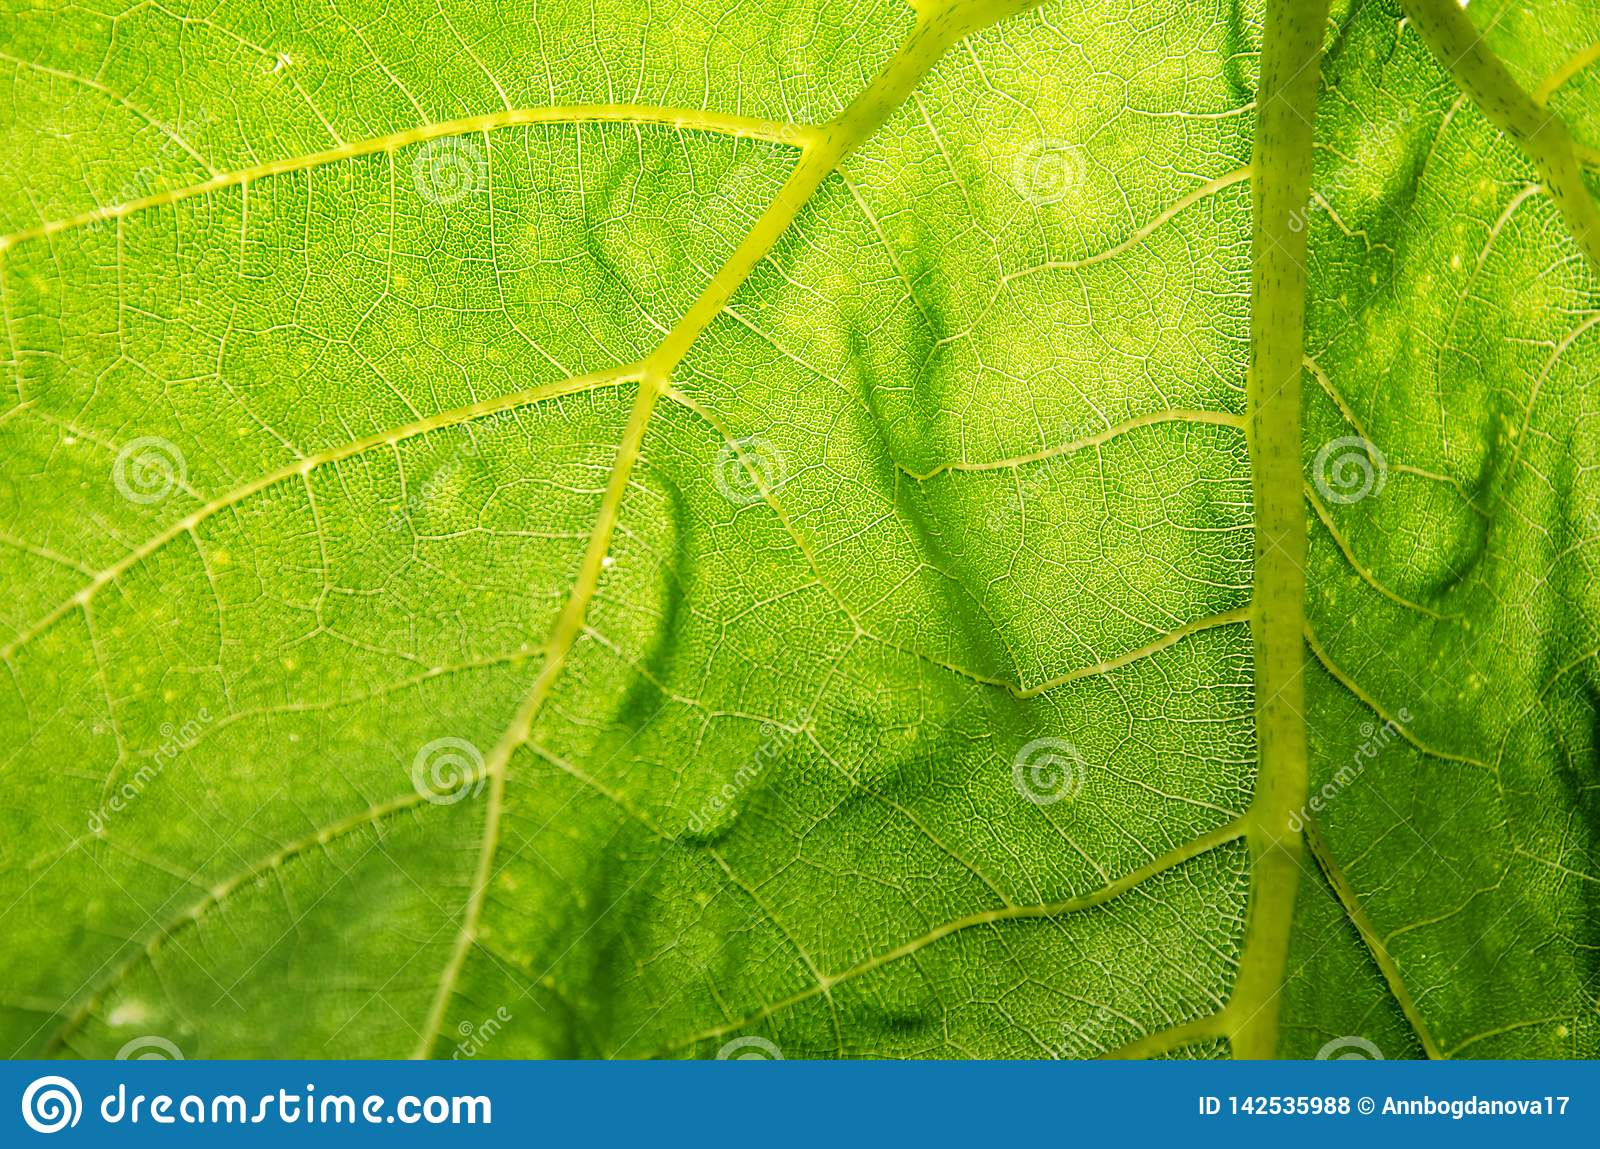 Texture of leaves of green color